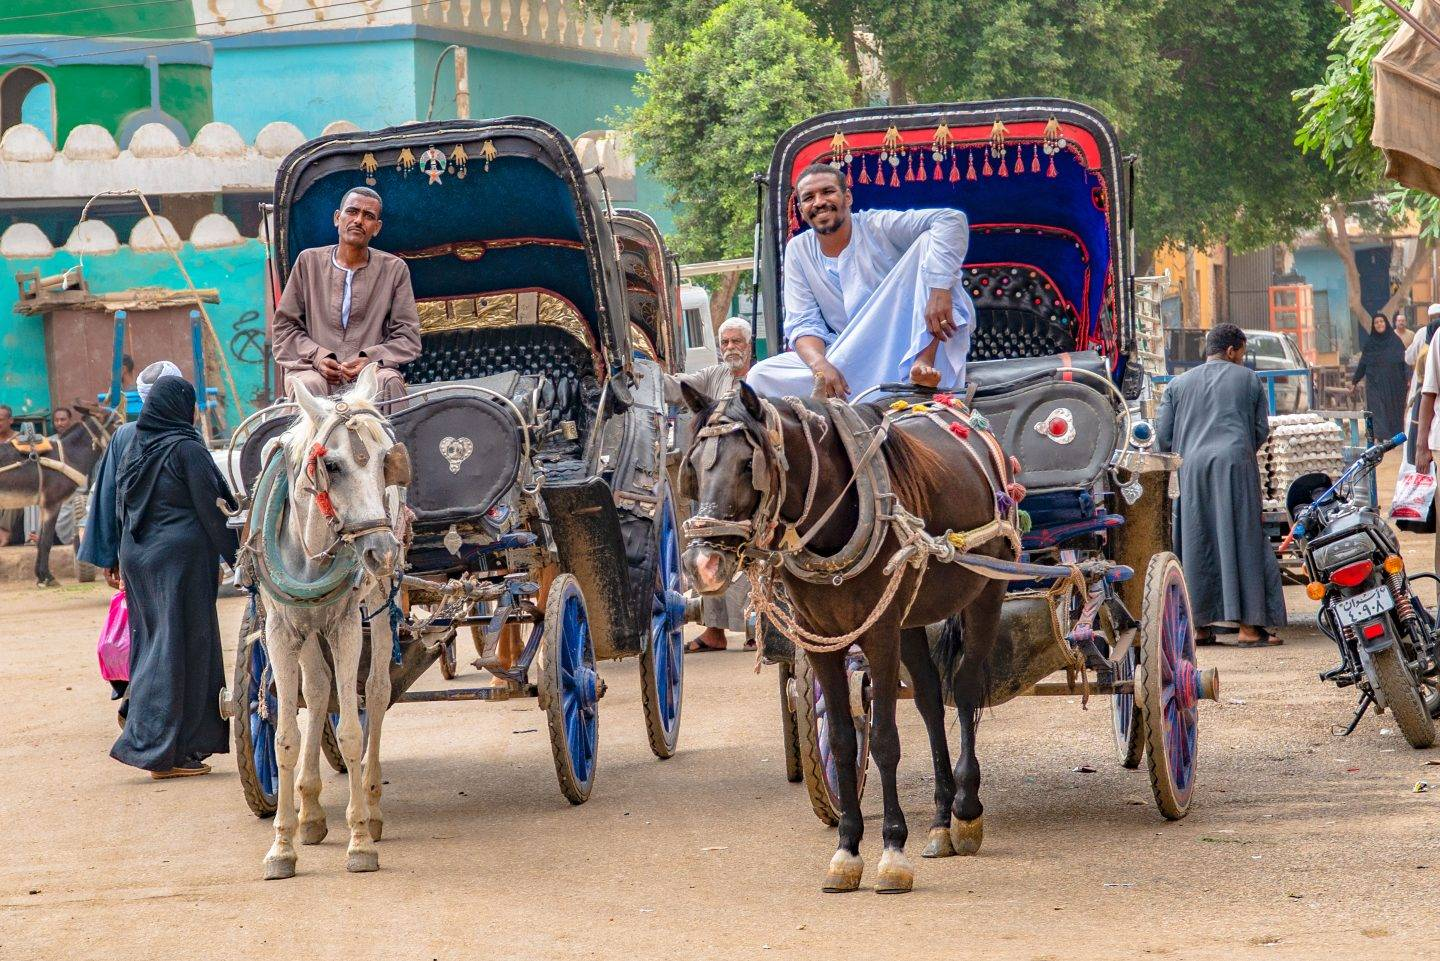 Fight Poverty Through Travel. These horse and buggy drivers in Kom Ombo, Egypt drove us to the local market where we interacted with the amazingly interesting and fascinating Egyptians.